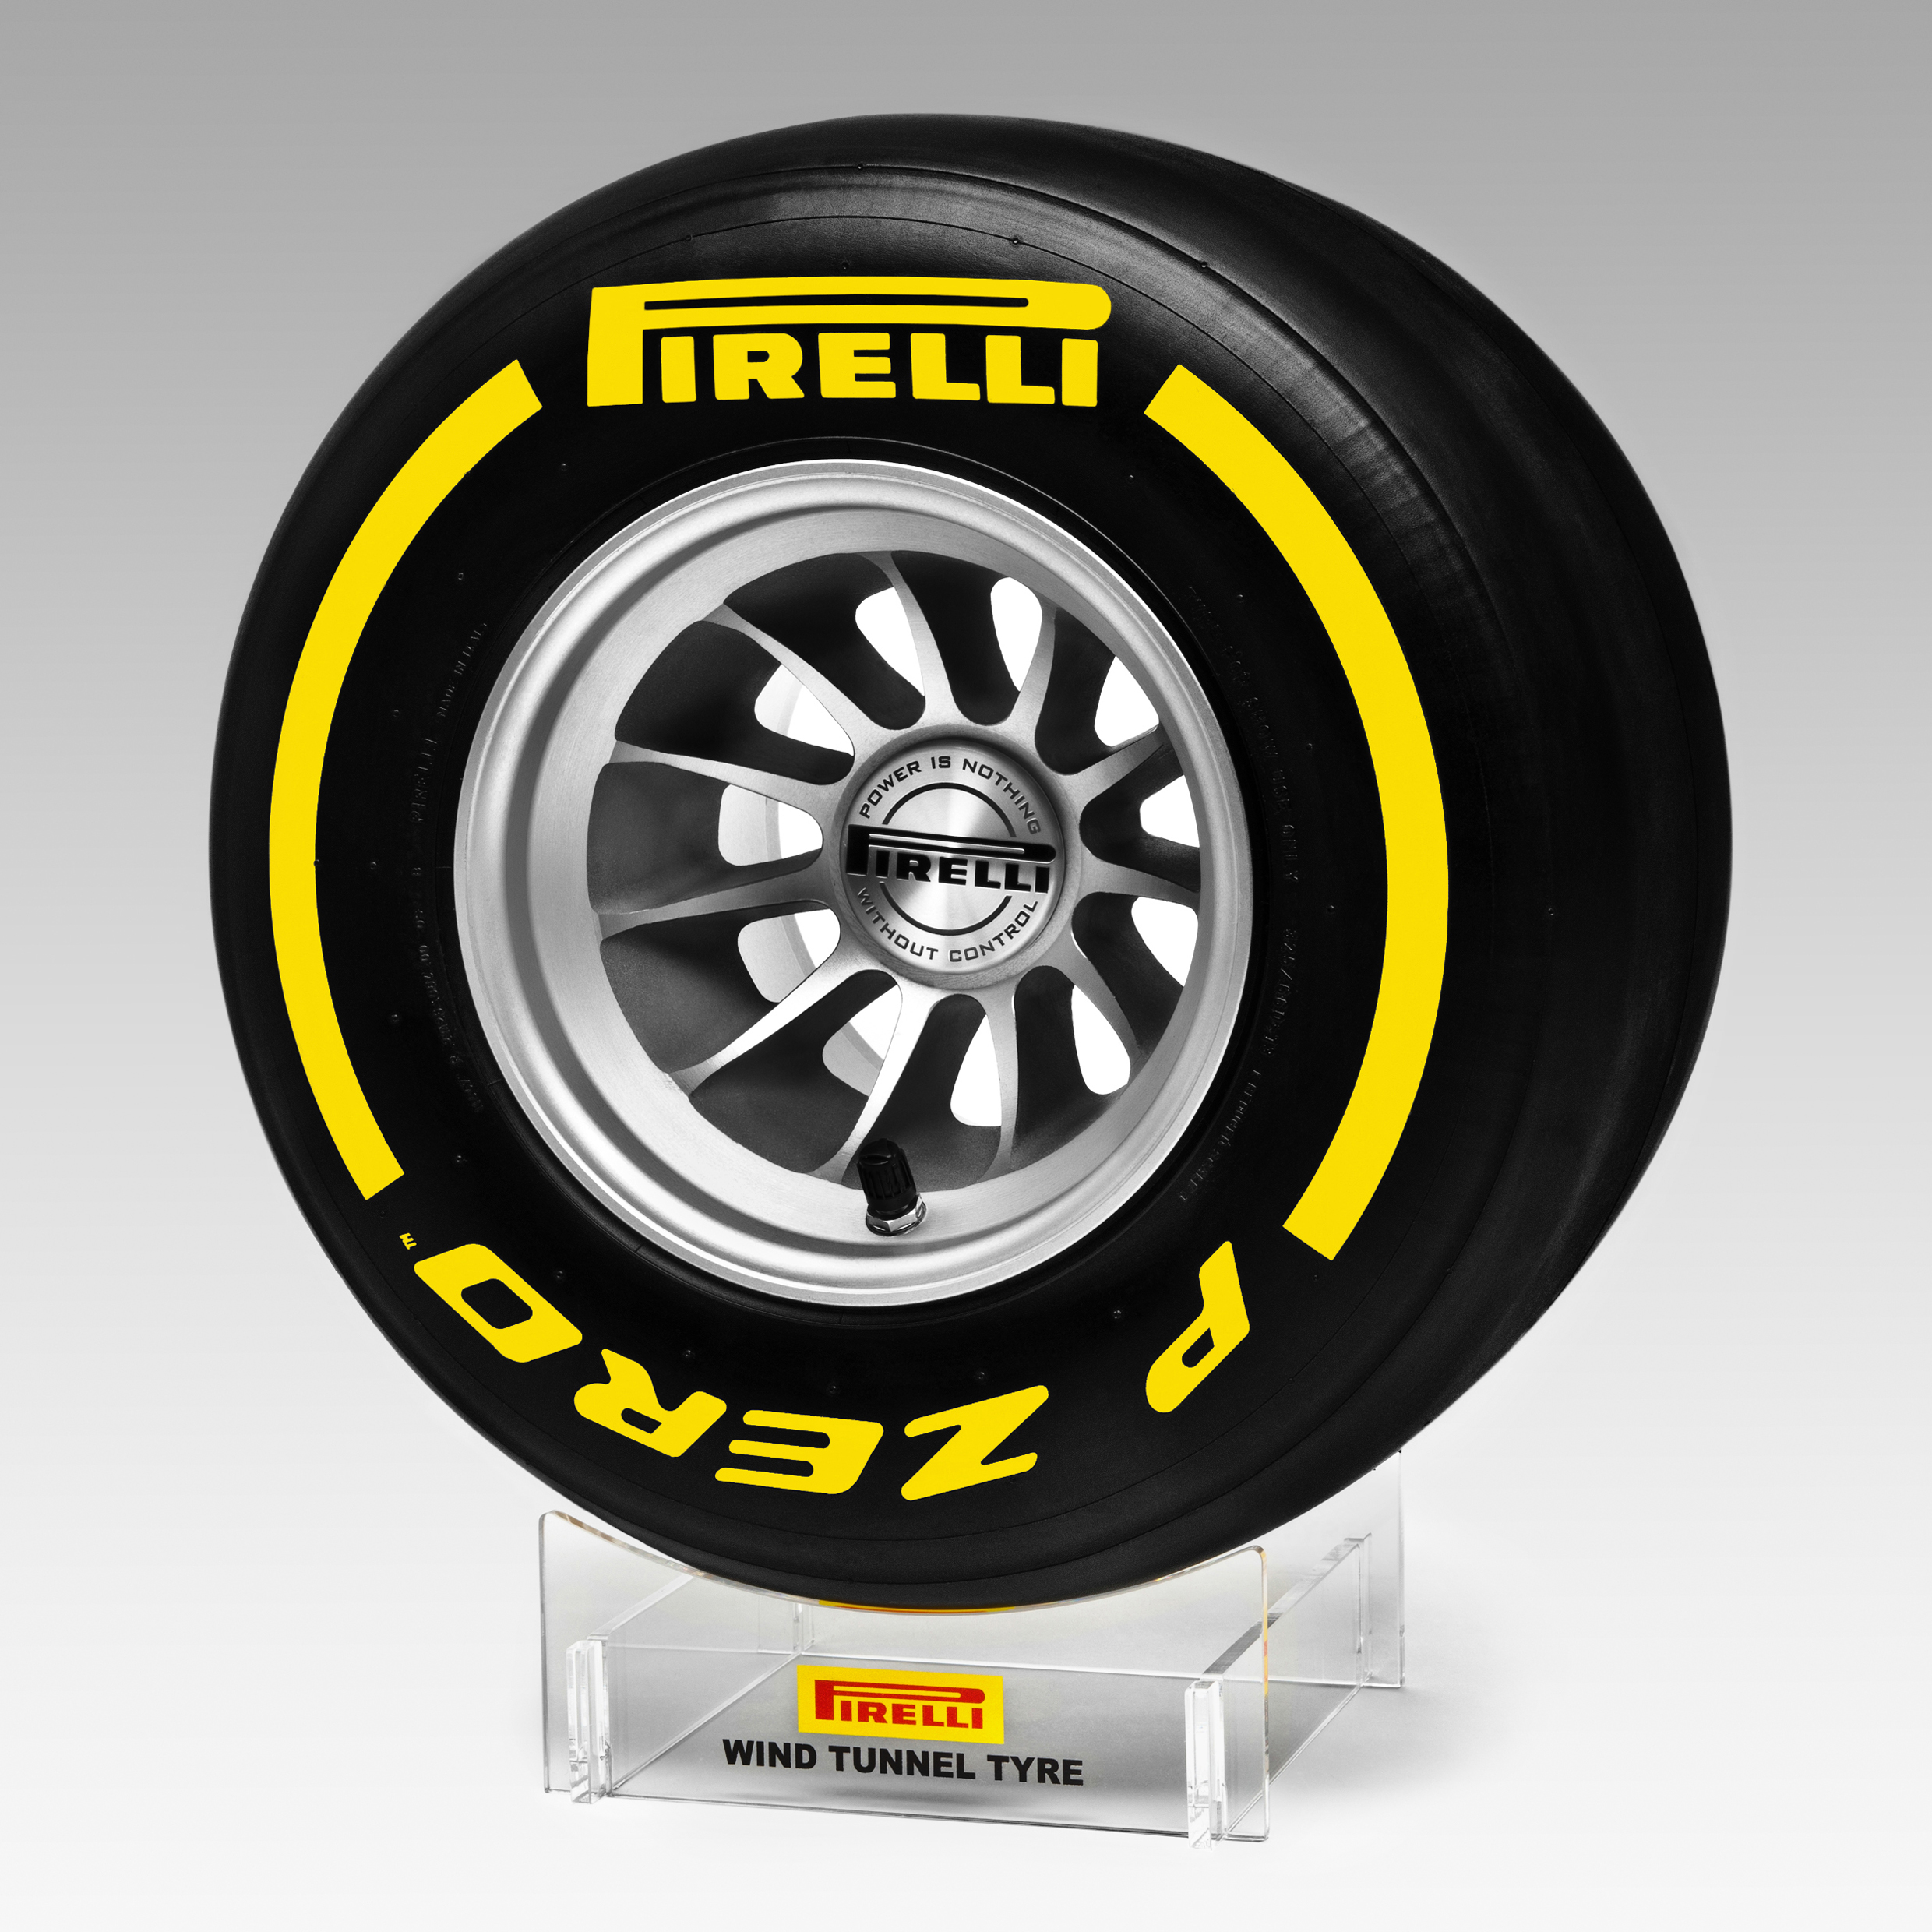 Pirelli Replica Racing Wind Tunnel Tyre 1:2 Scale